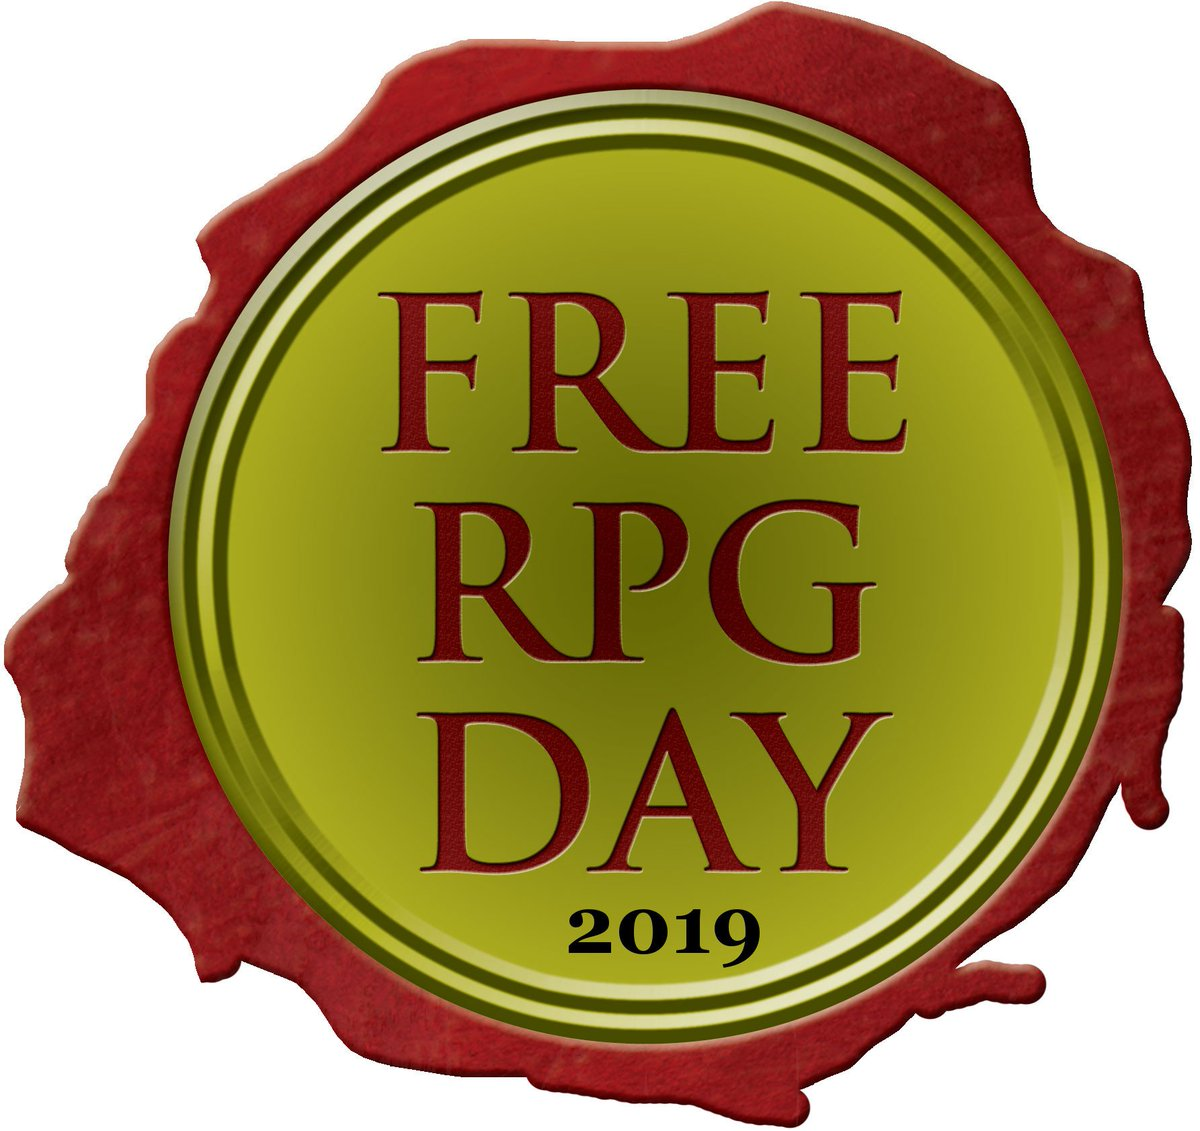 Image result for free rpg day 2019